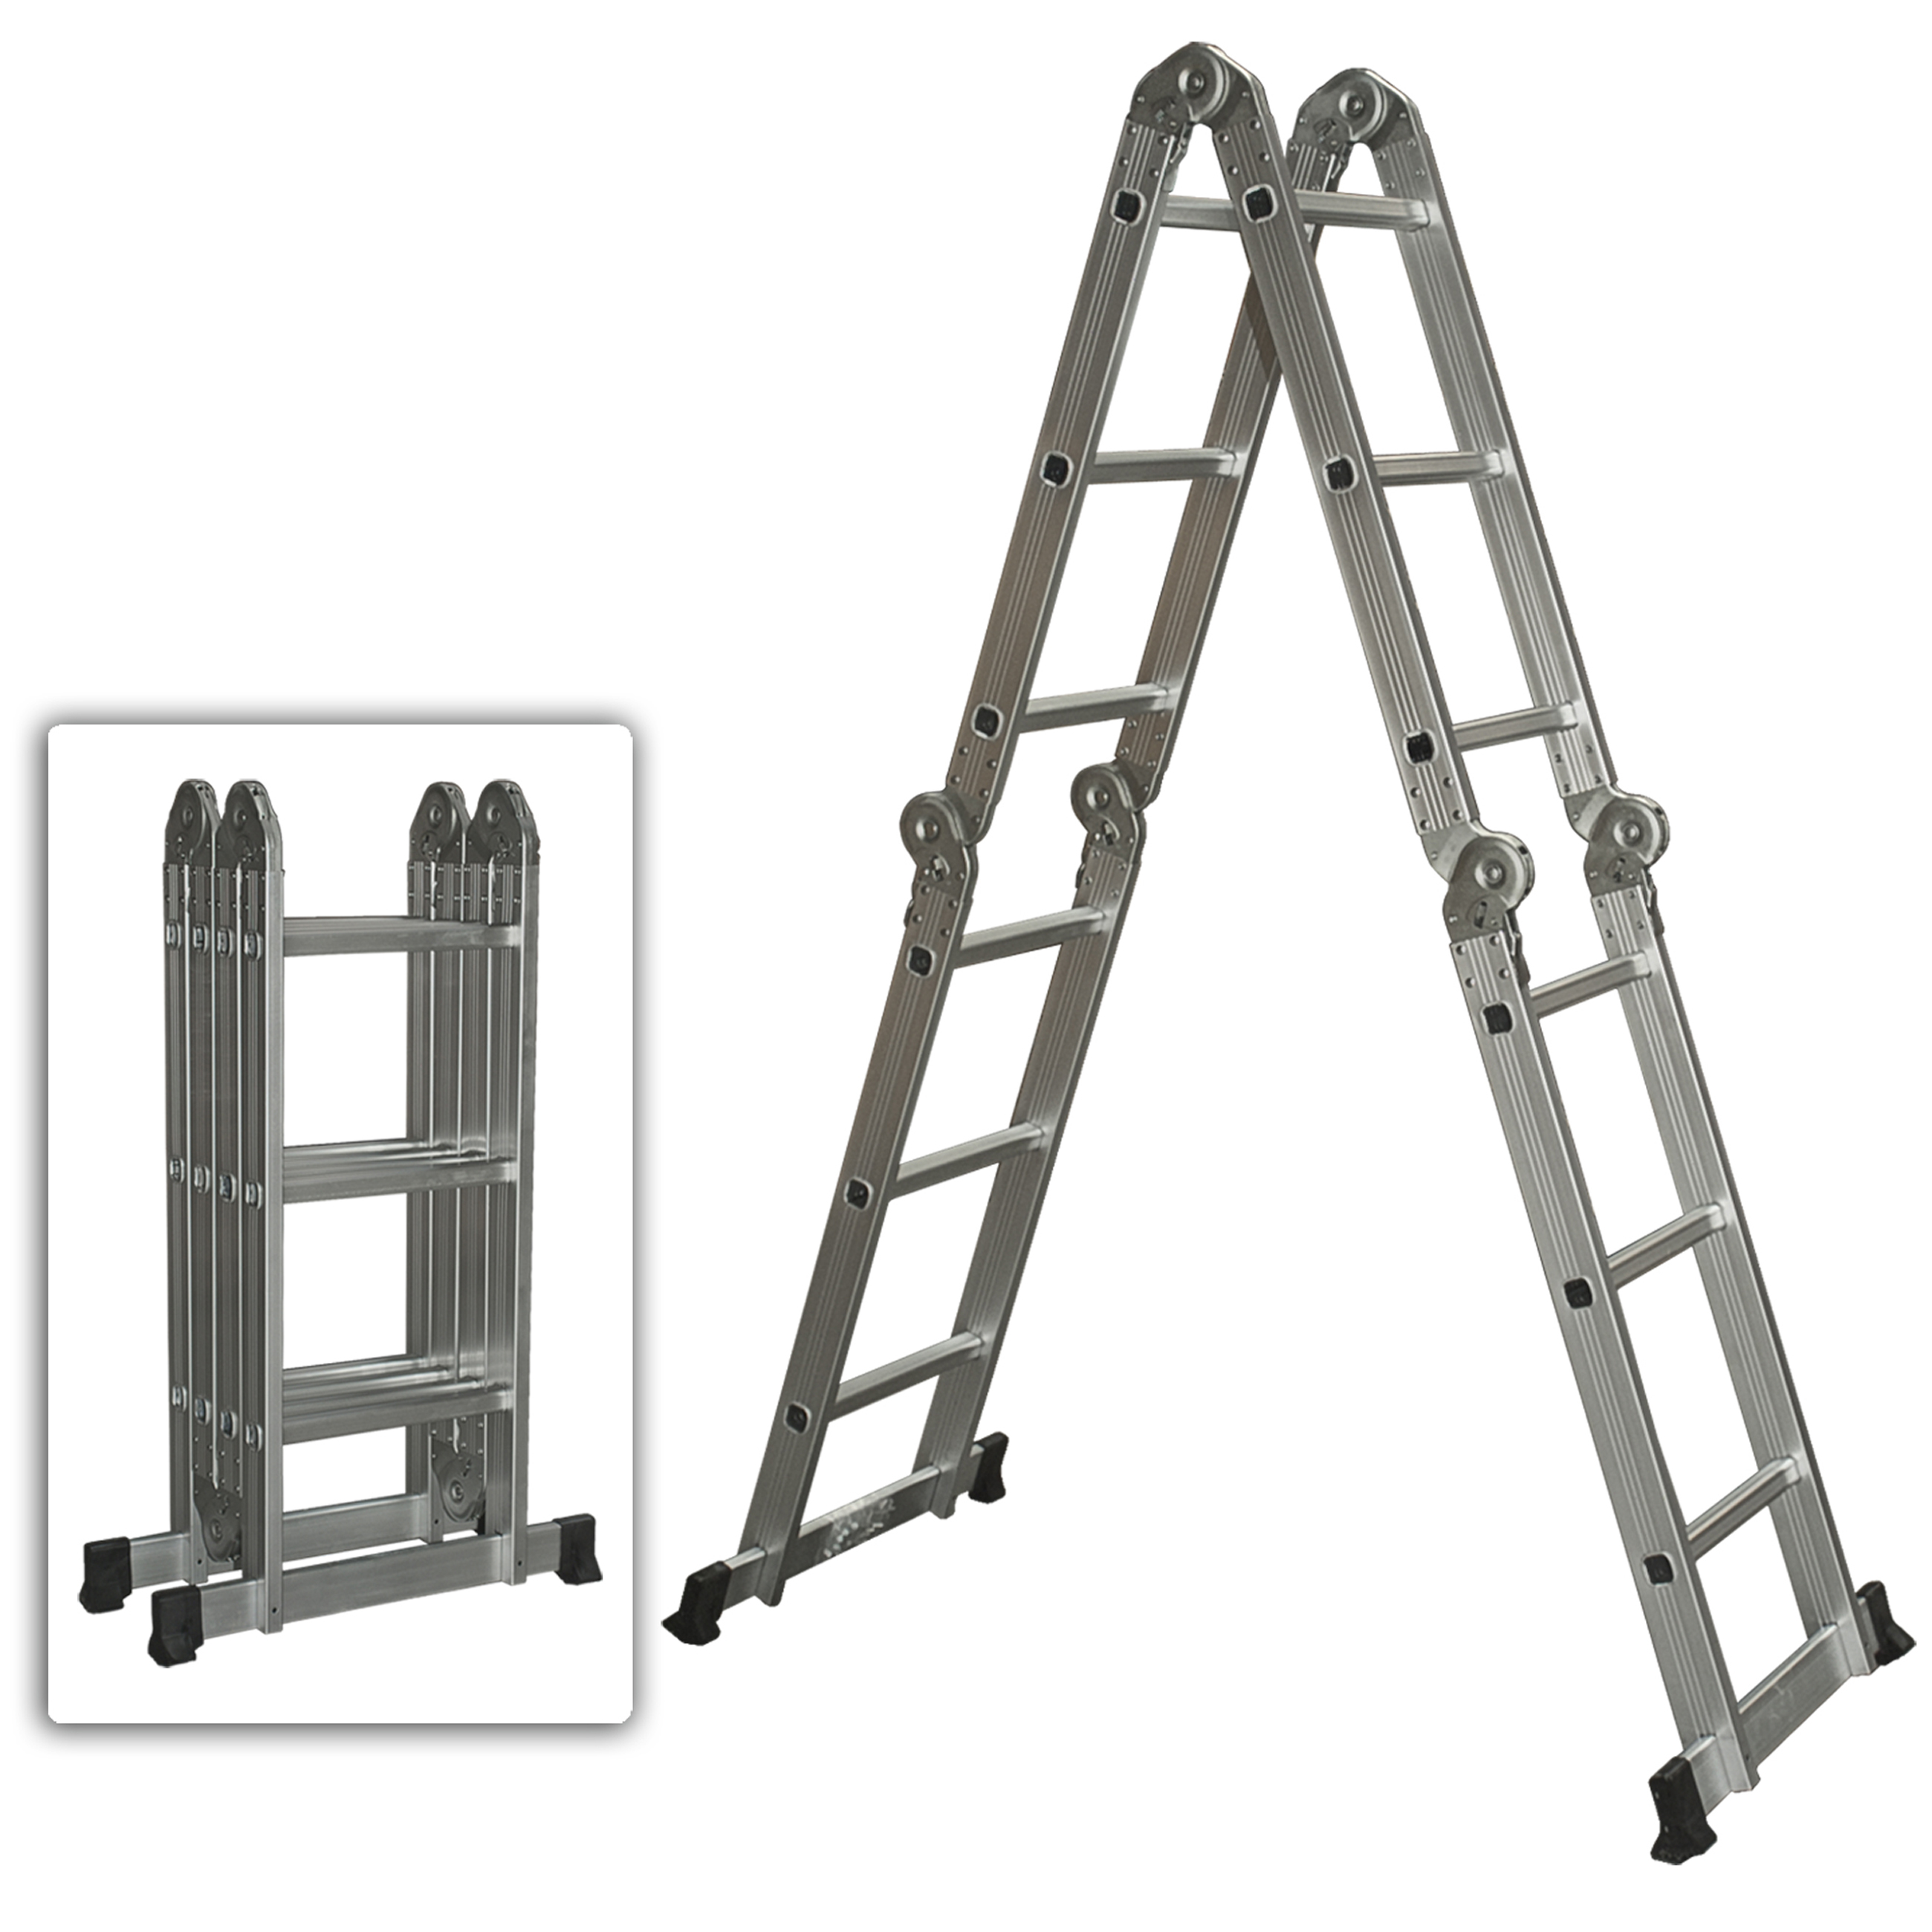 Multi Purpose Aluminum Ladder Folding Step Ladder Extendable Heavy Duty